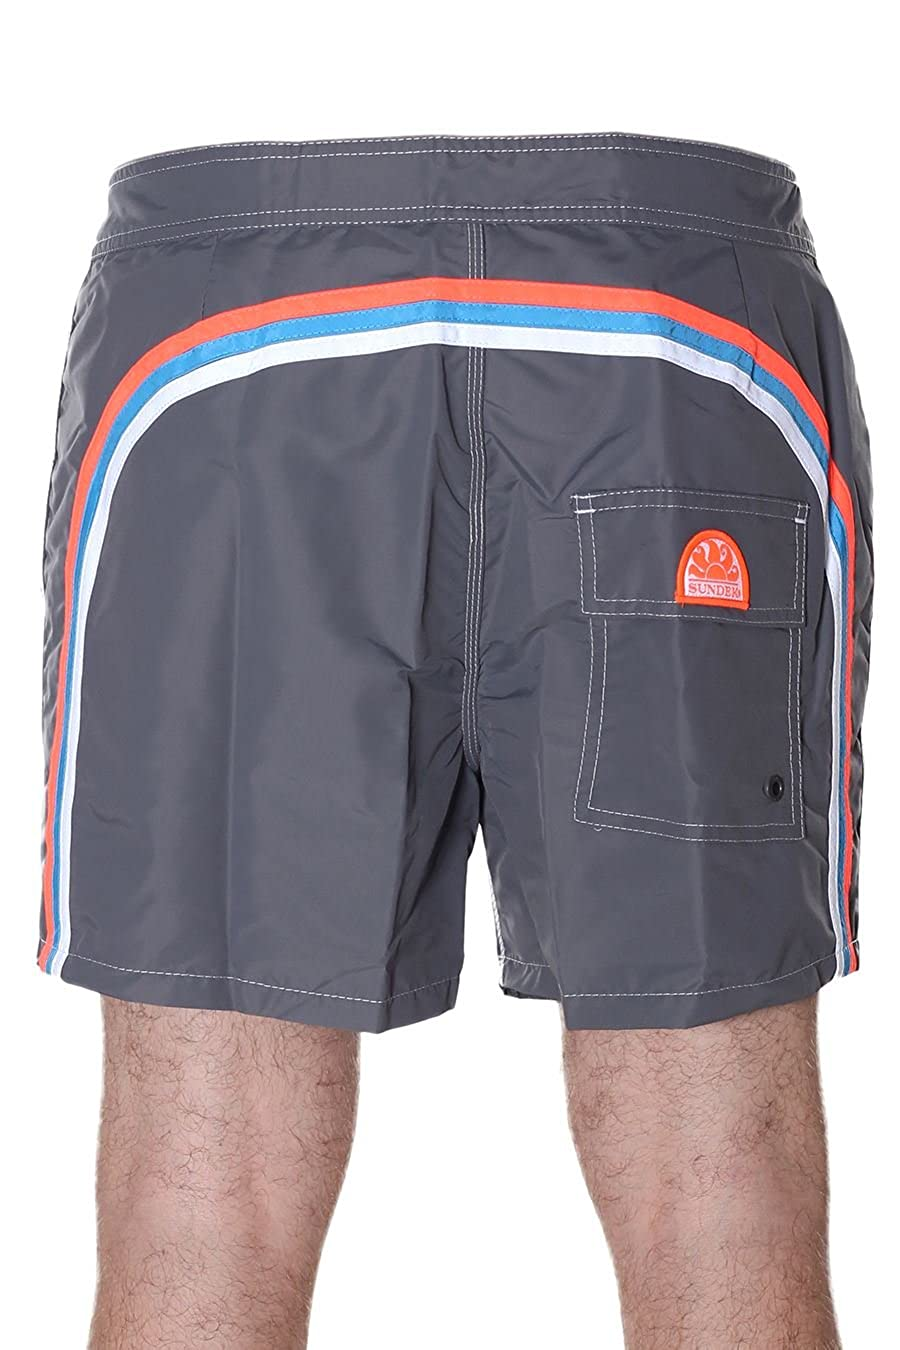 Sundek Mens Mid-Length Board Shorts Gray 34